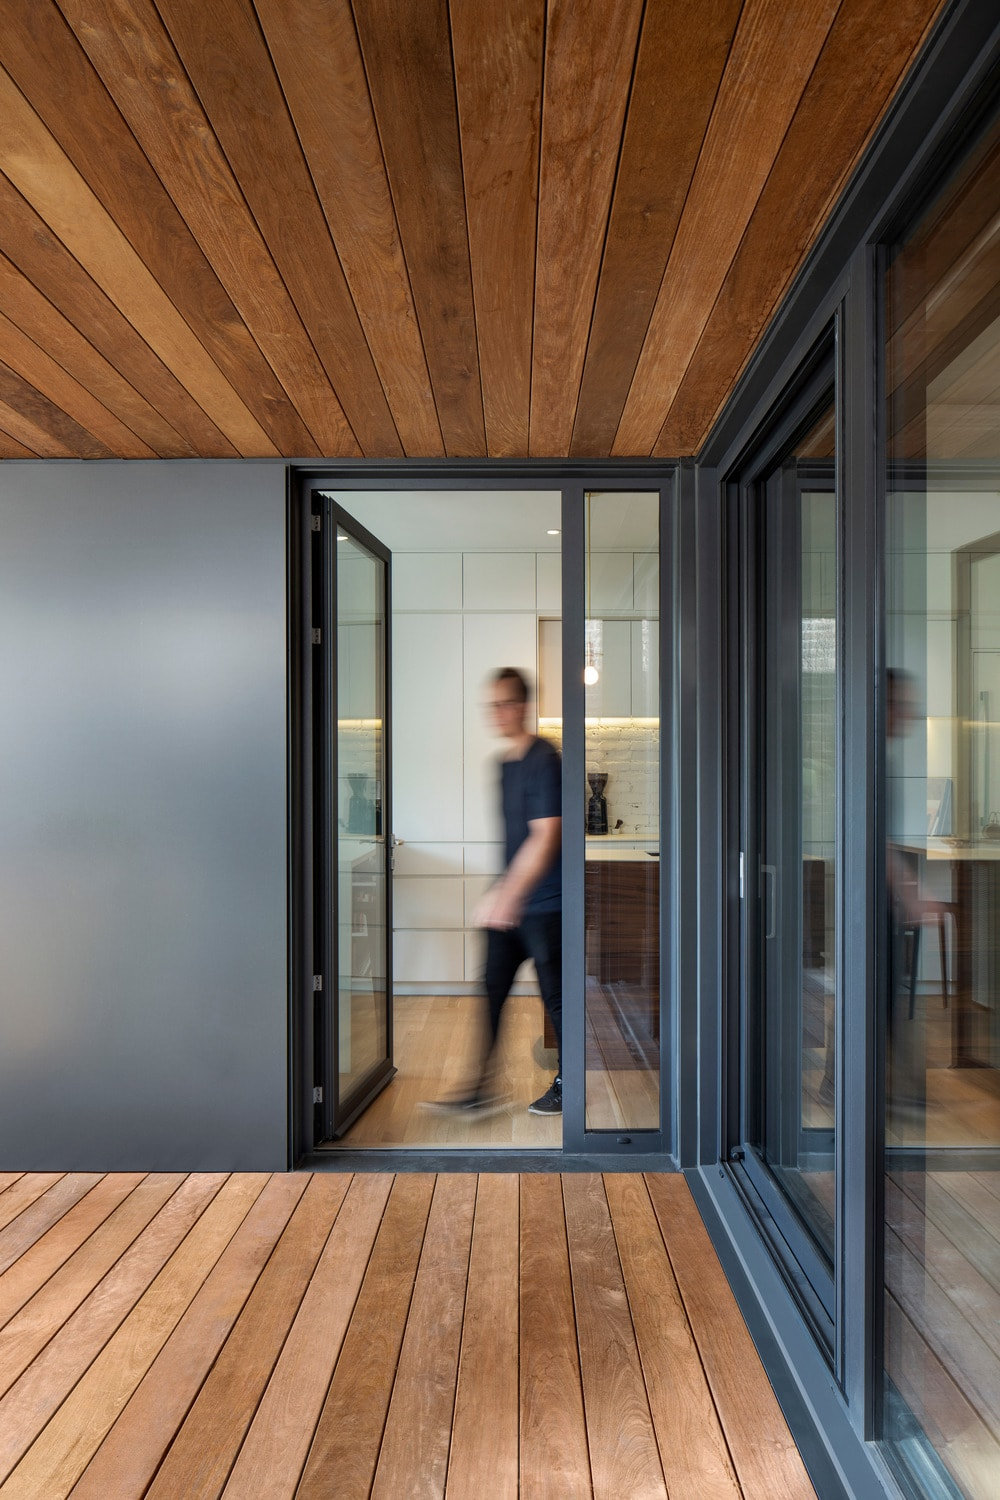 This is a closer look at the glass door of the main entrance. You can also see here that the wooden deck flooring of the entrance matches with the wooden ceiling.